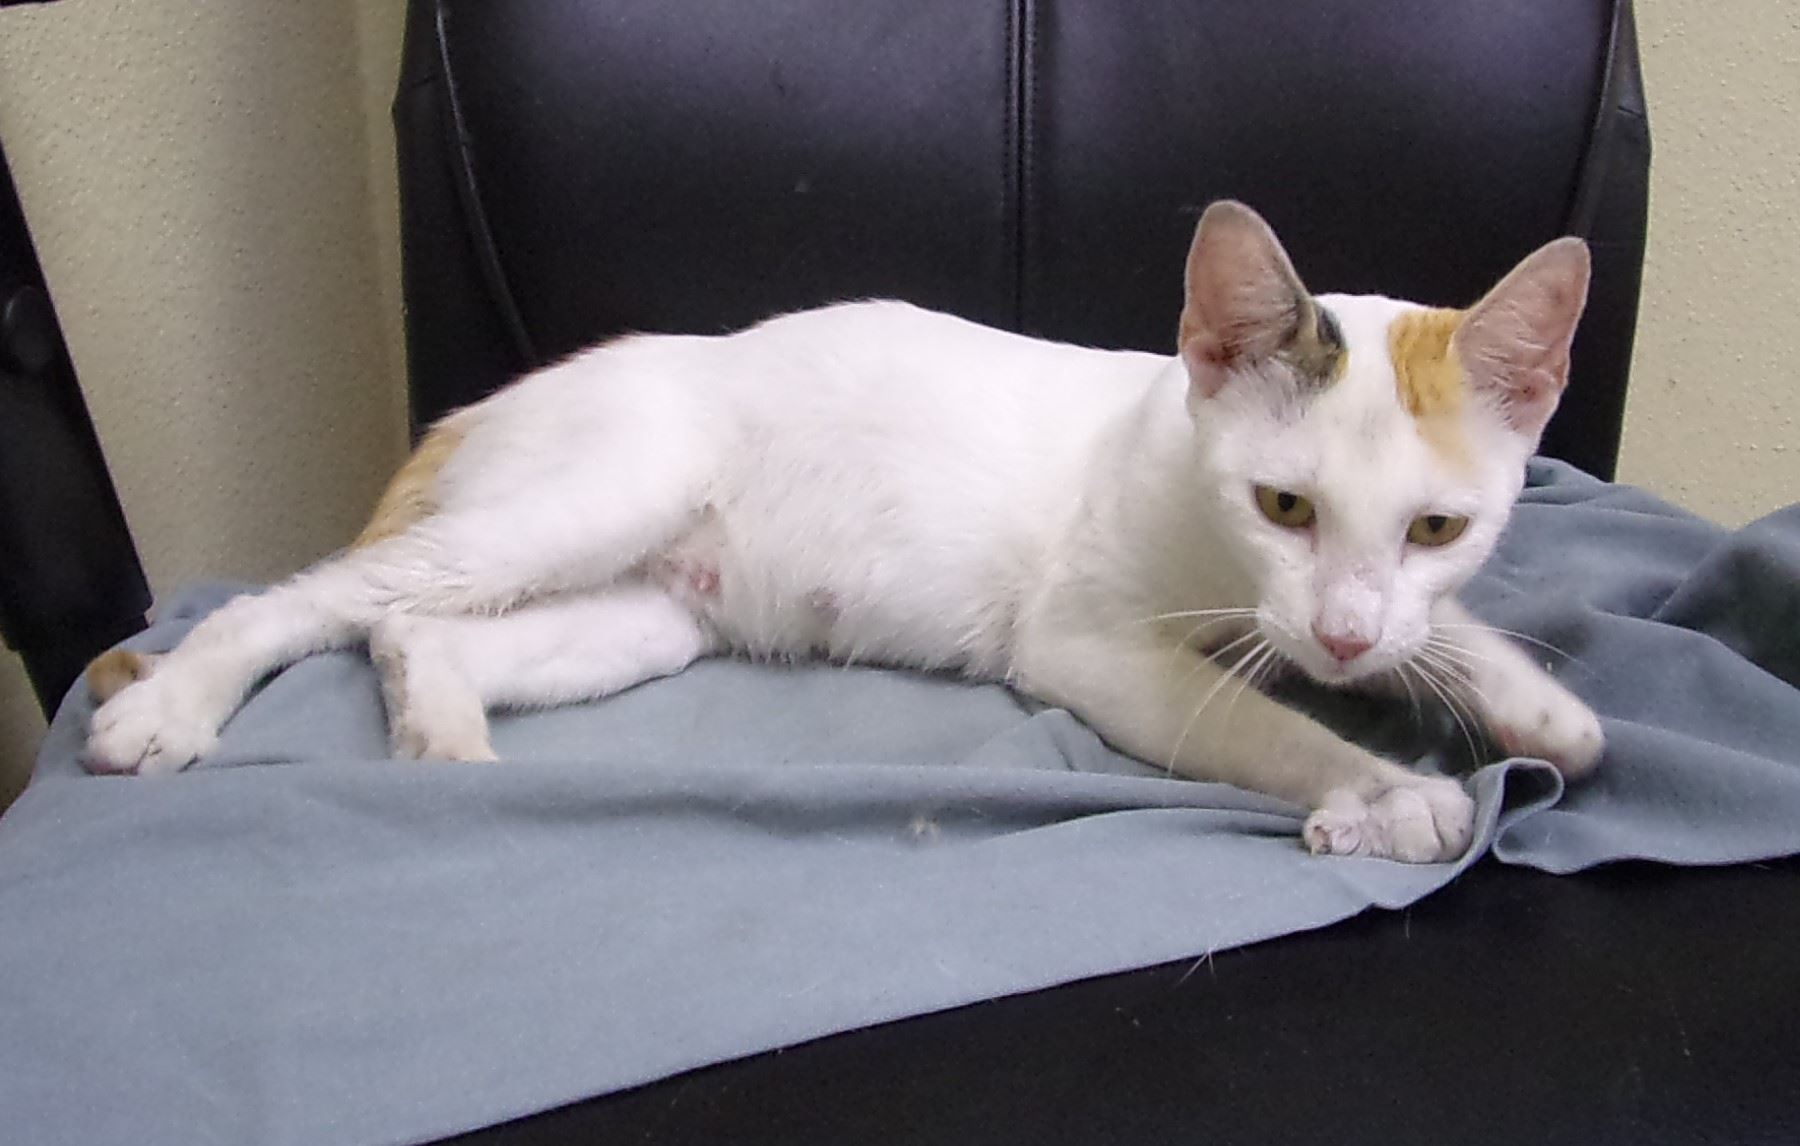 19-400 Elva female white cat with orange and grey markings